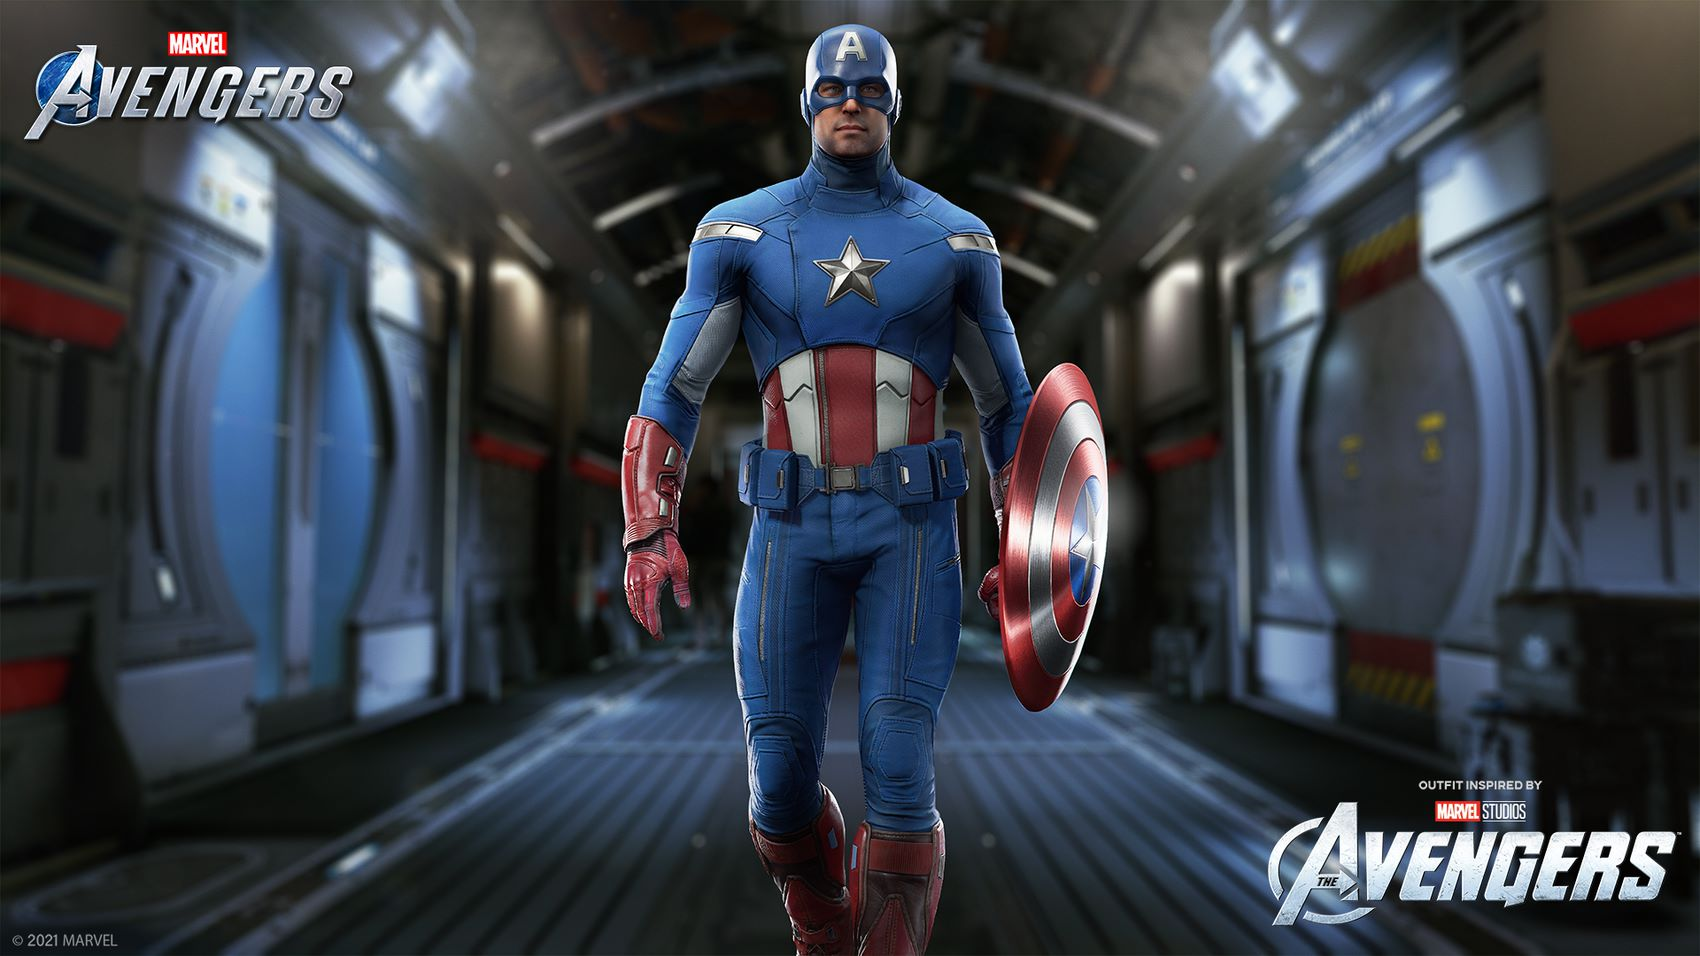 A beauty shot of our new Outfit for Captain America, inspired by his look in Marvel Studio's The Avengers film.